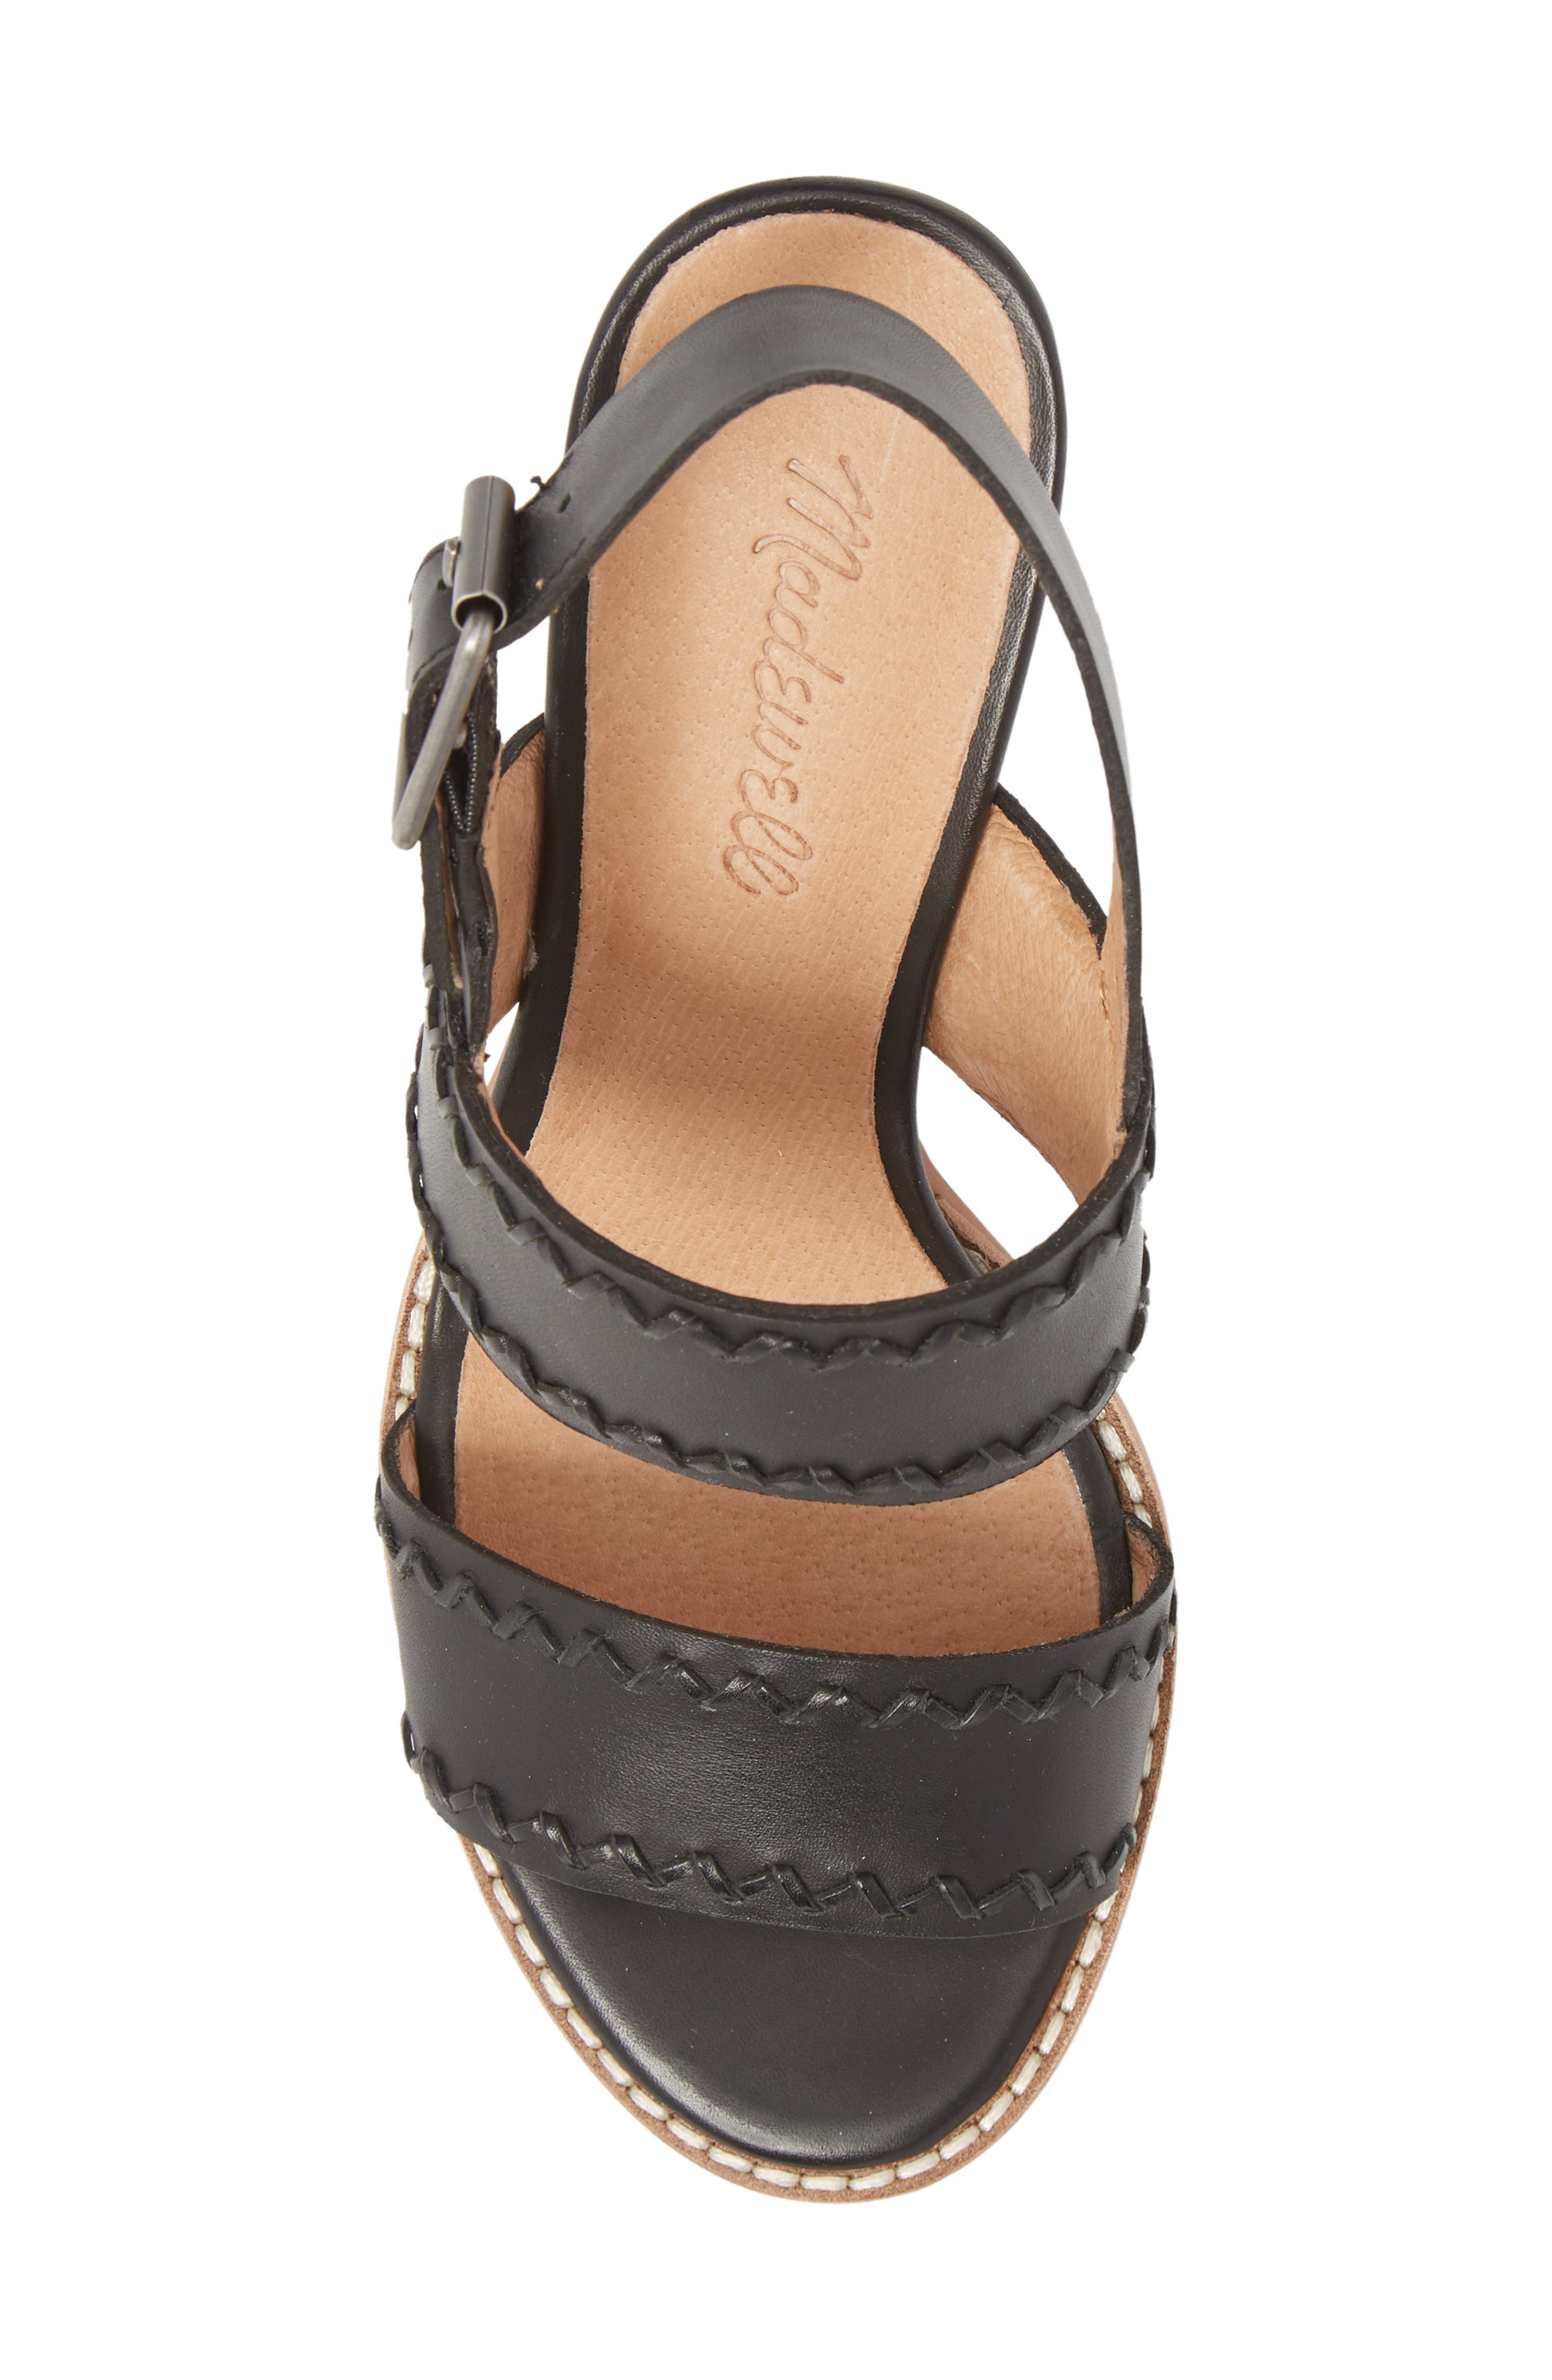 Giana Sandal,                             Alternate thumbnail 5, color,                             True Black Leather